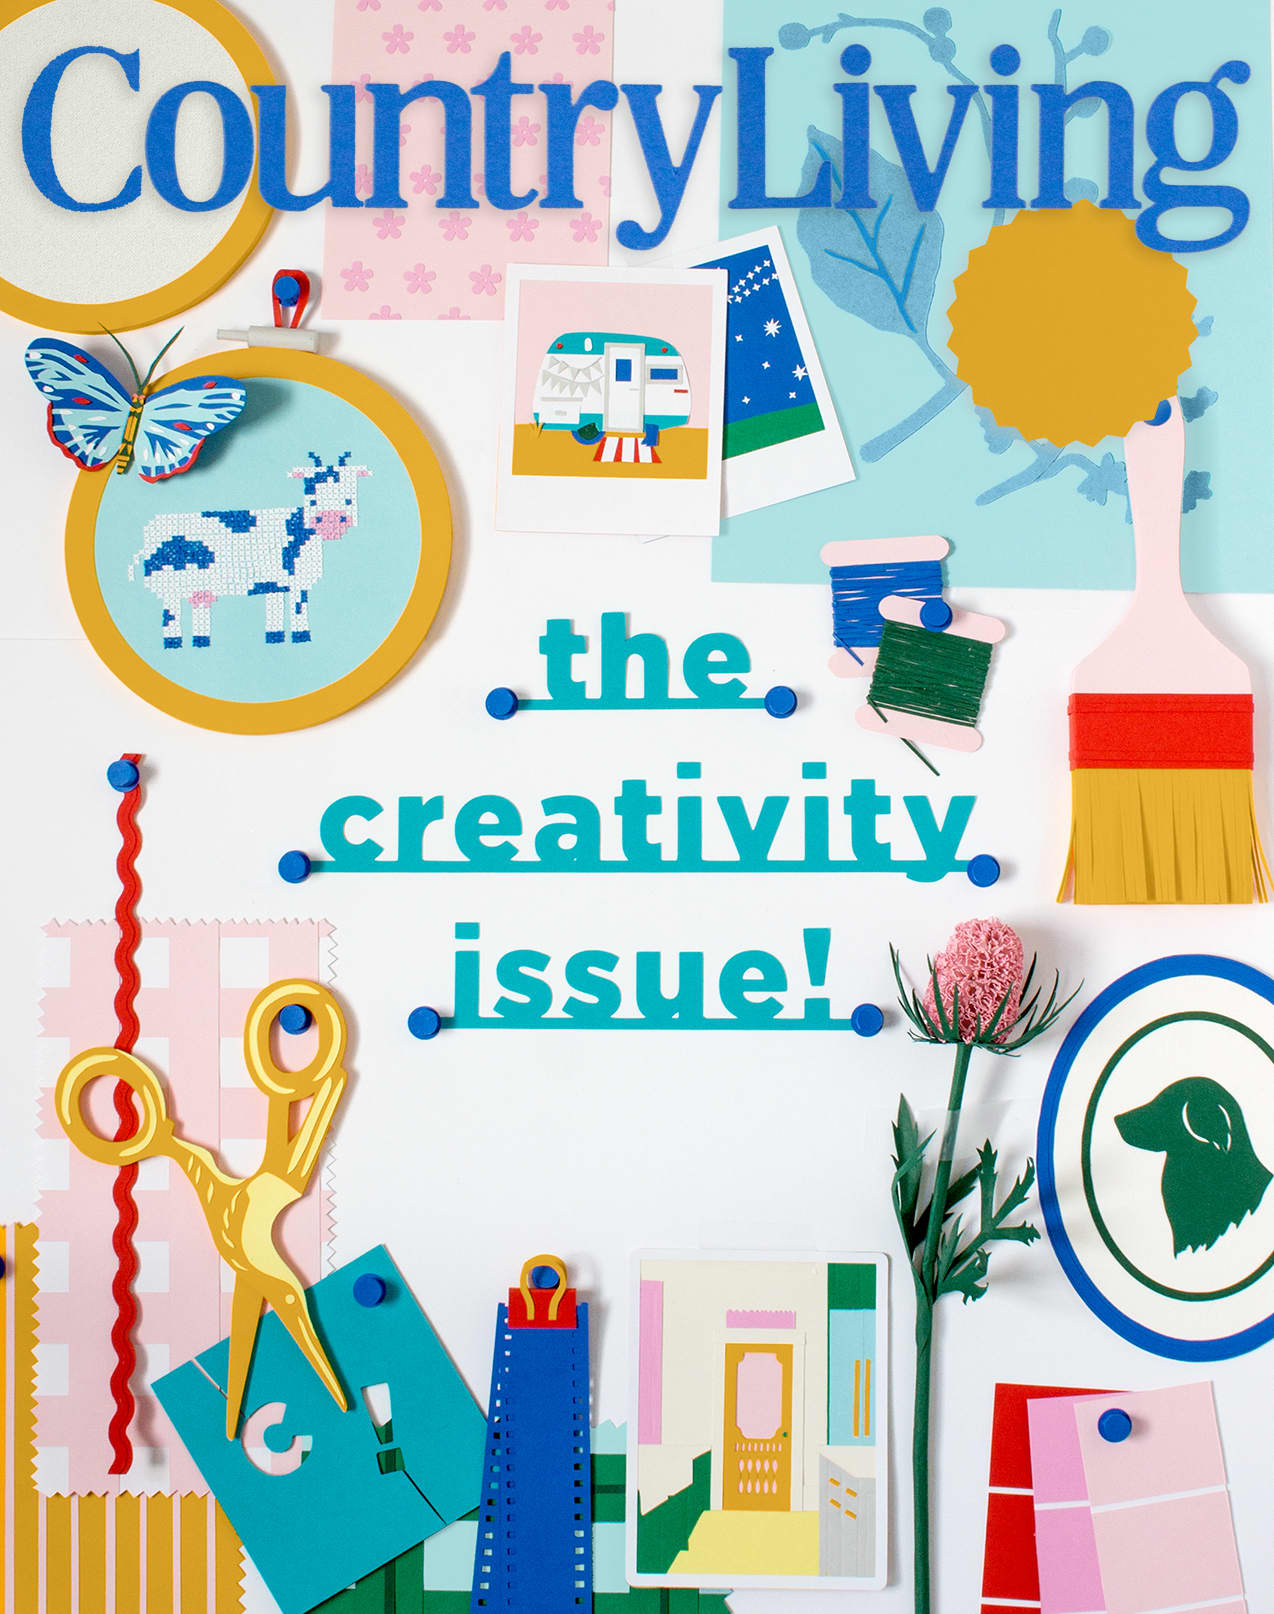 Country Living 'The Creativity Issue'